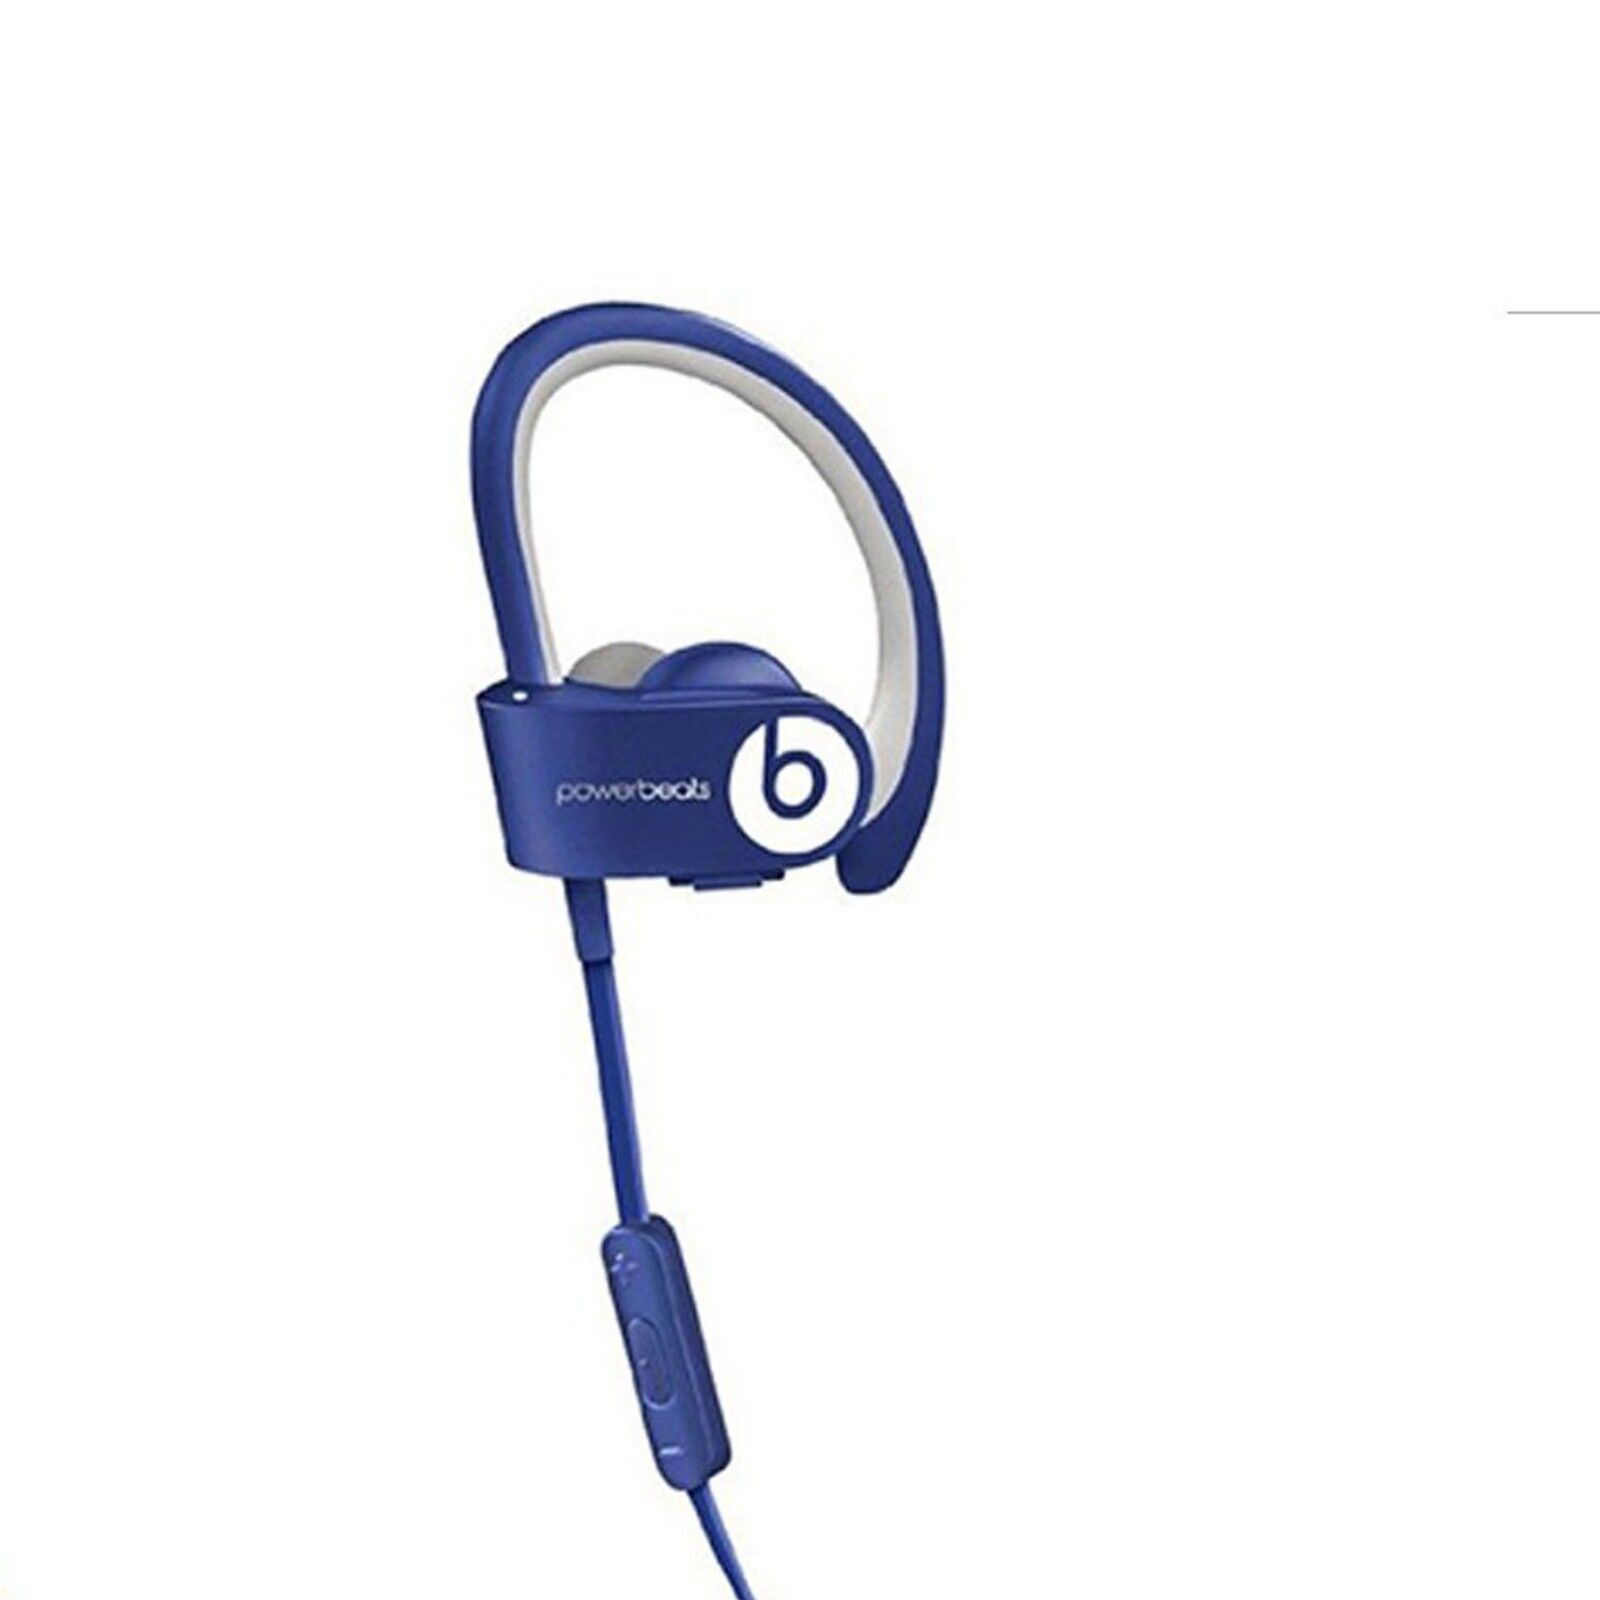 Beats by Dr. Dre Powerbeats 2 Wired In Ear Headphones with Correct Serial Number